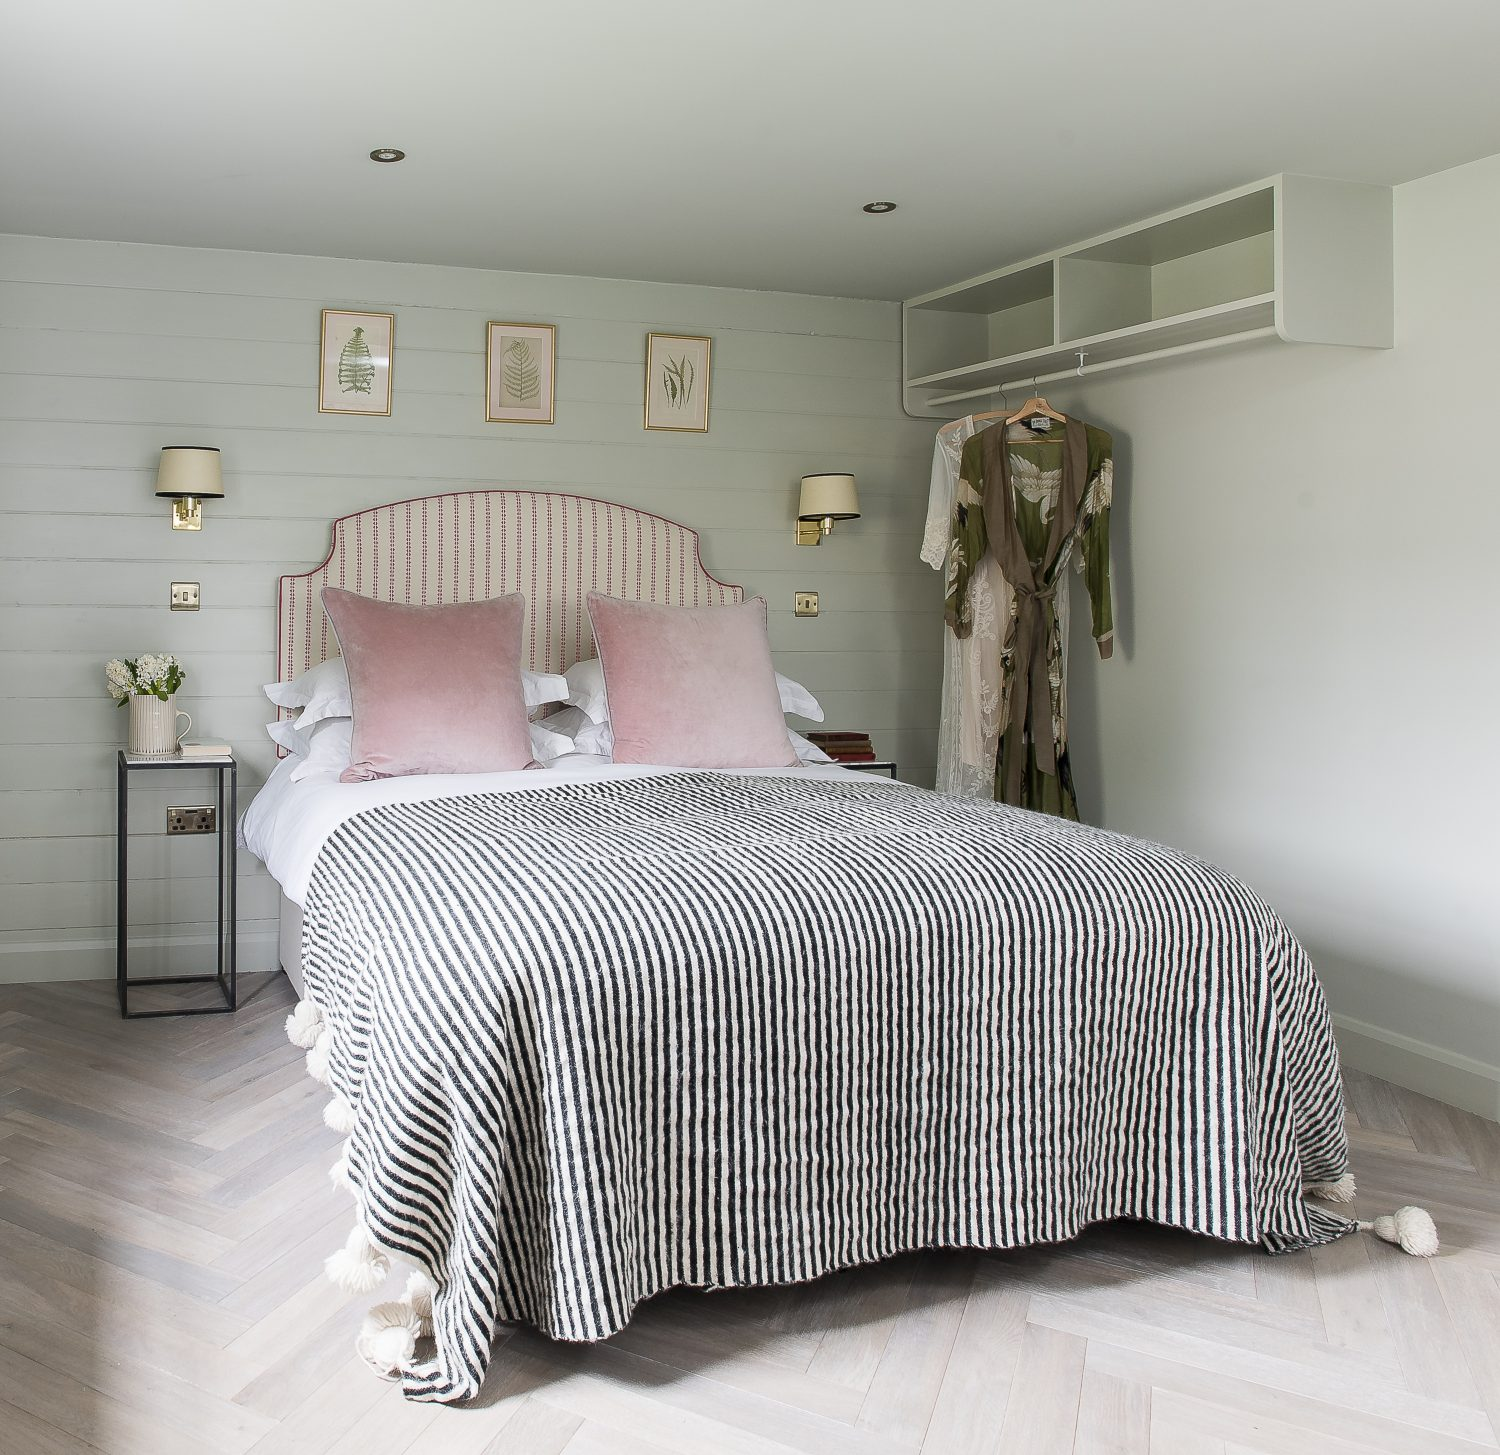 In the main bedroom, a pink and white striped headboard from The Headboard Workshop is upholstered in fabric by Vanessa Arbuthnot